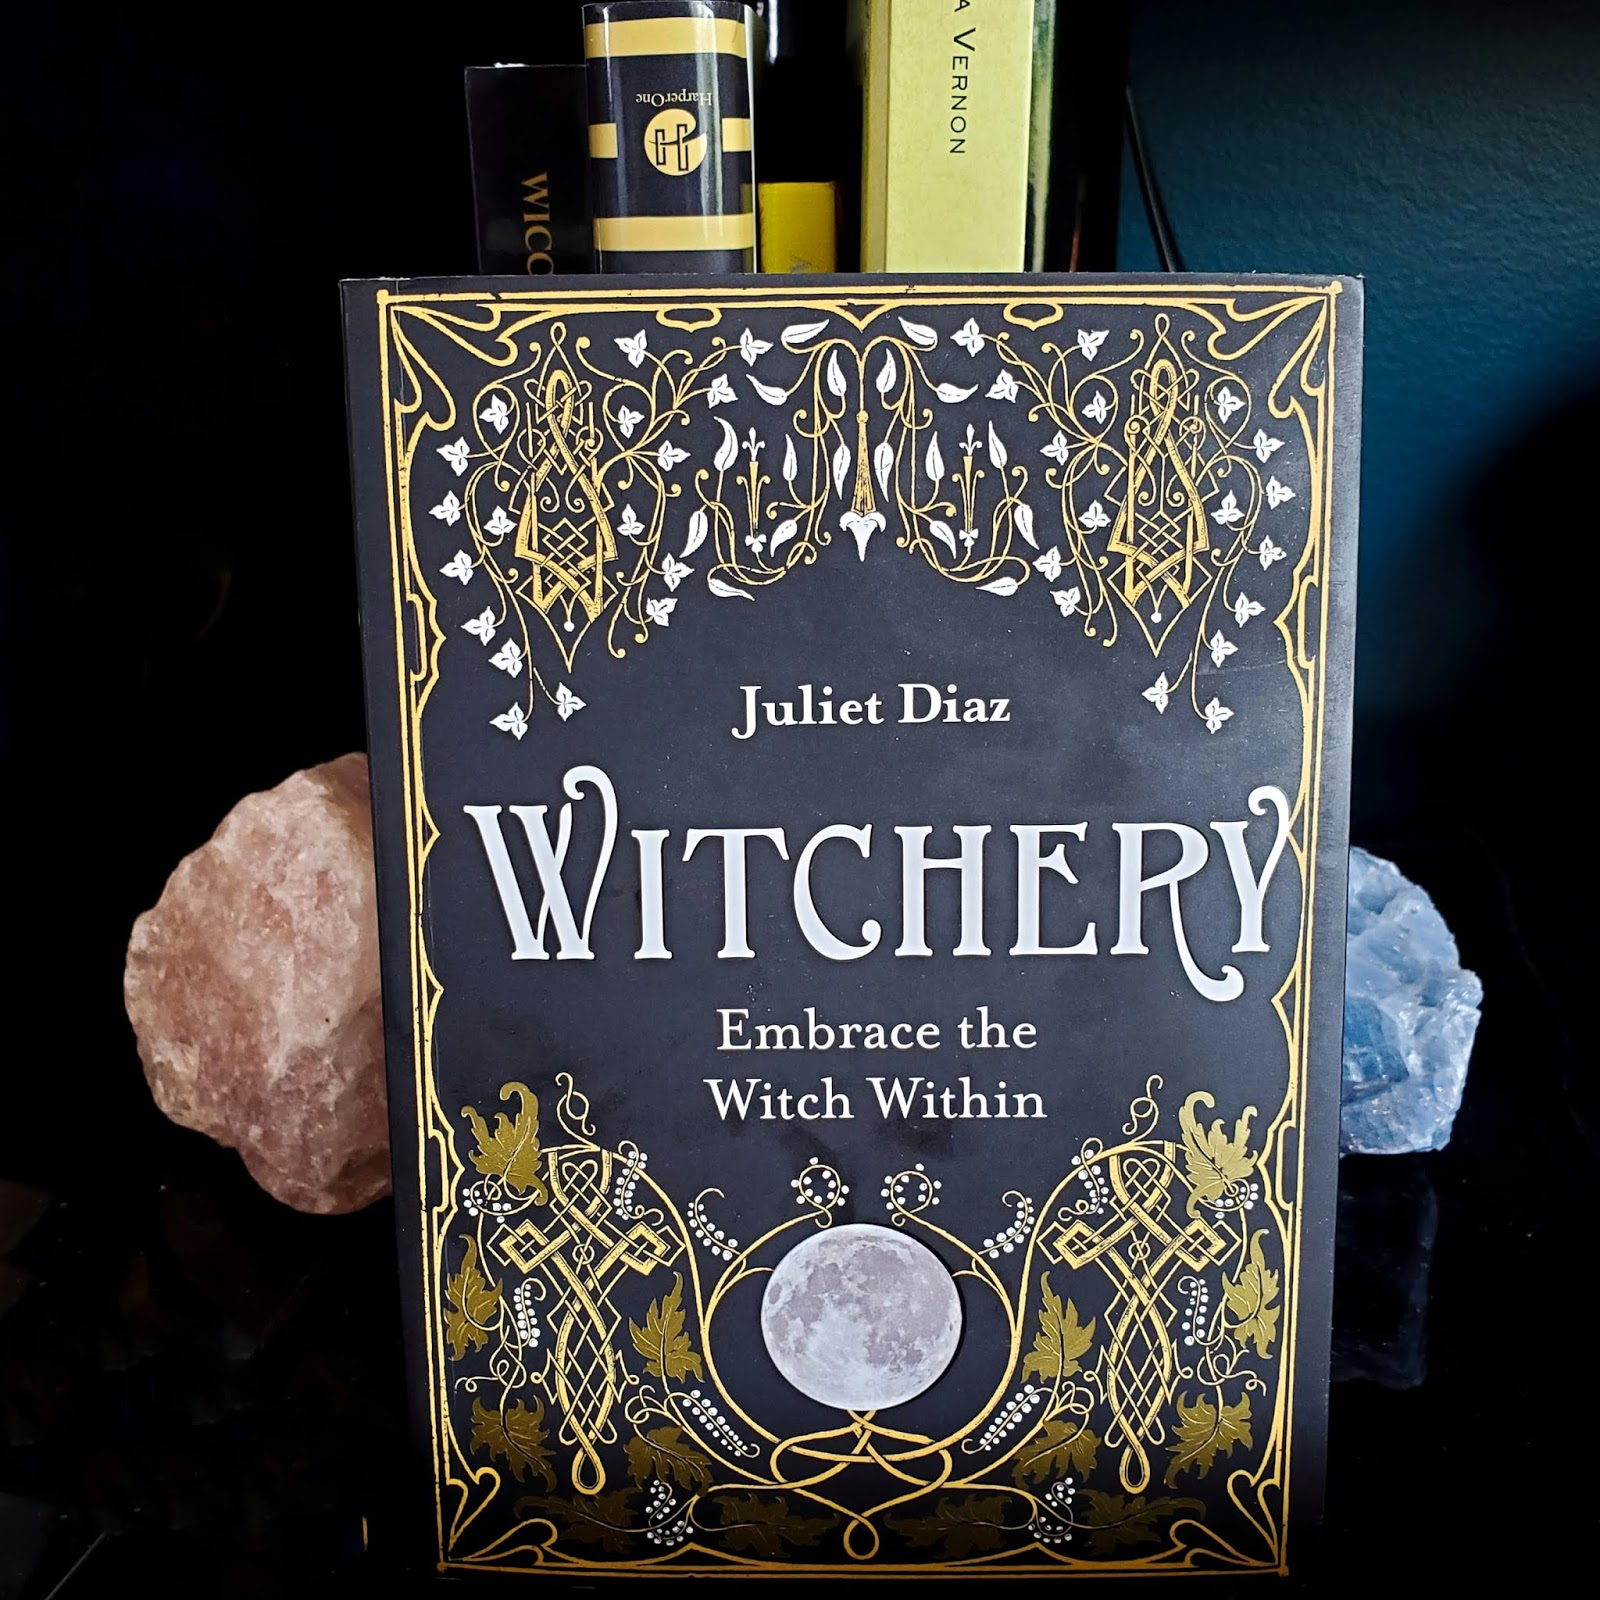 Witchery: Embracing The Witch Within by Julia Diaz